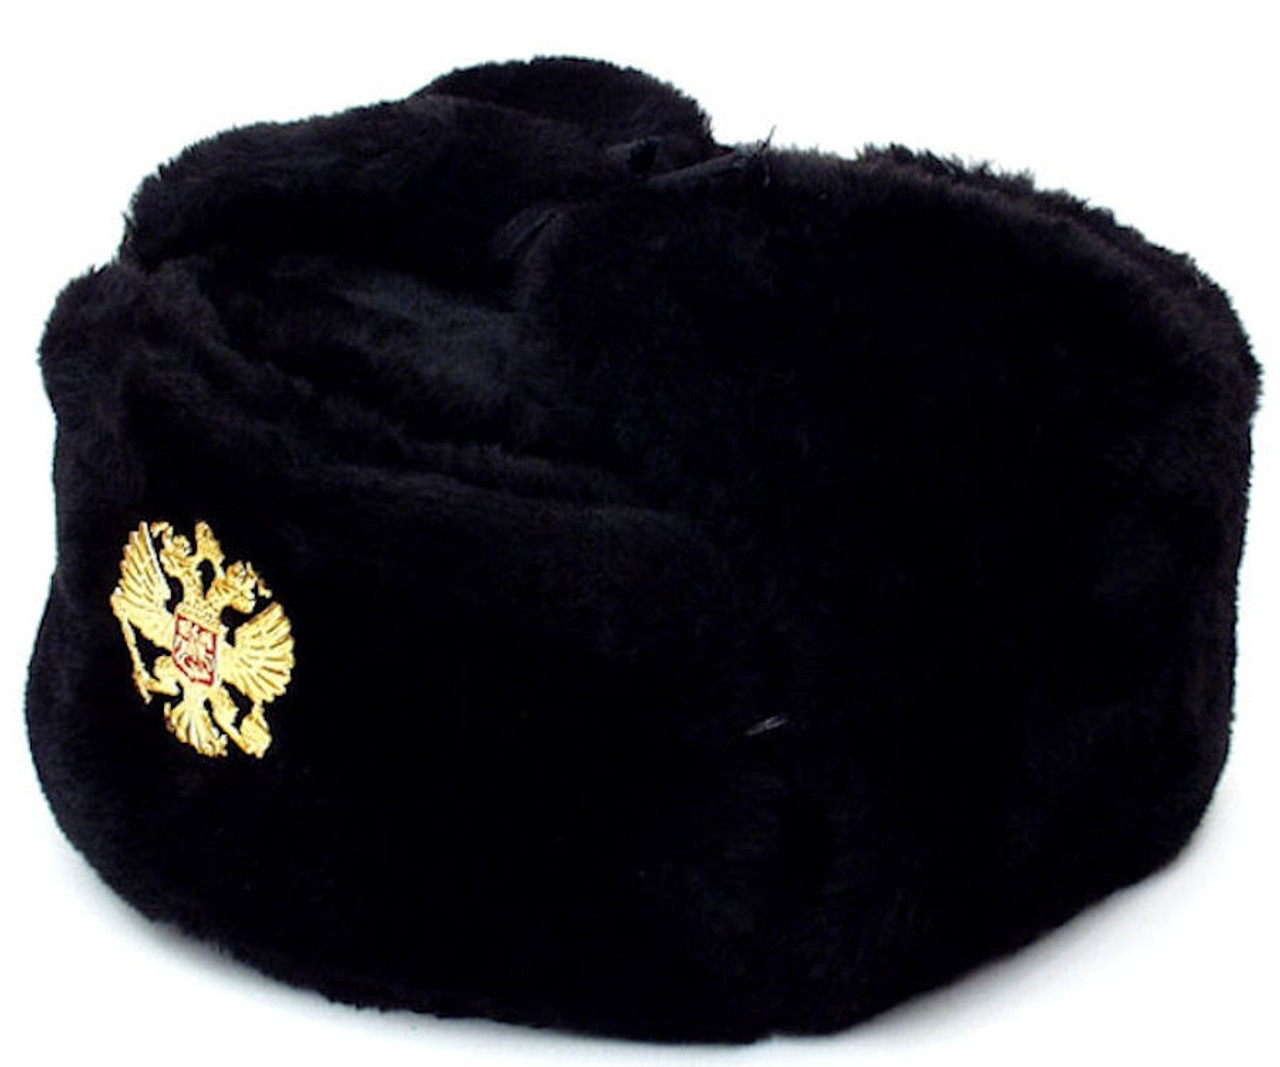 18a670a6c41 Authentic Russian Military Black Ushanka Hat Soviet Imperial Eagle Badge